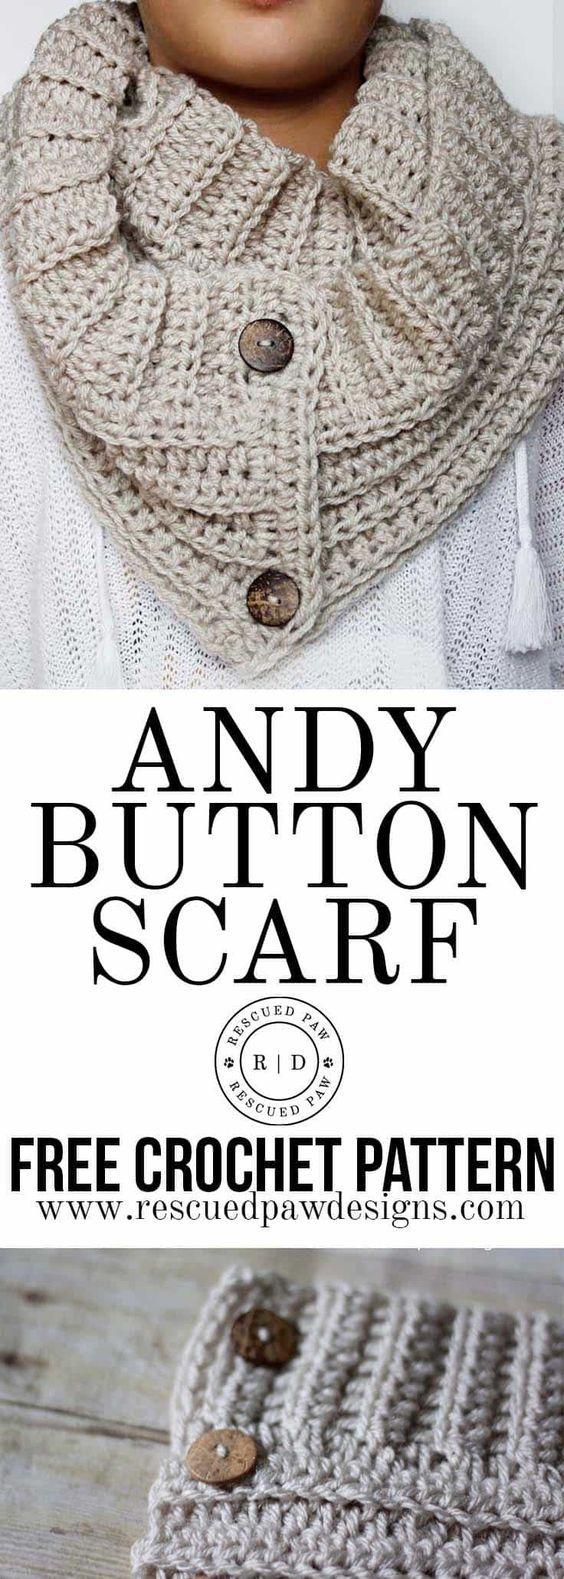 The Andy Button Scarf Pattern | Crochet cowls | Pinterest